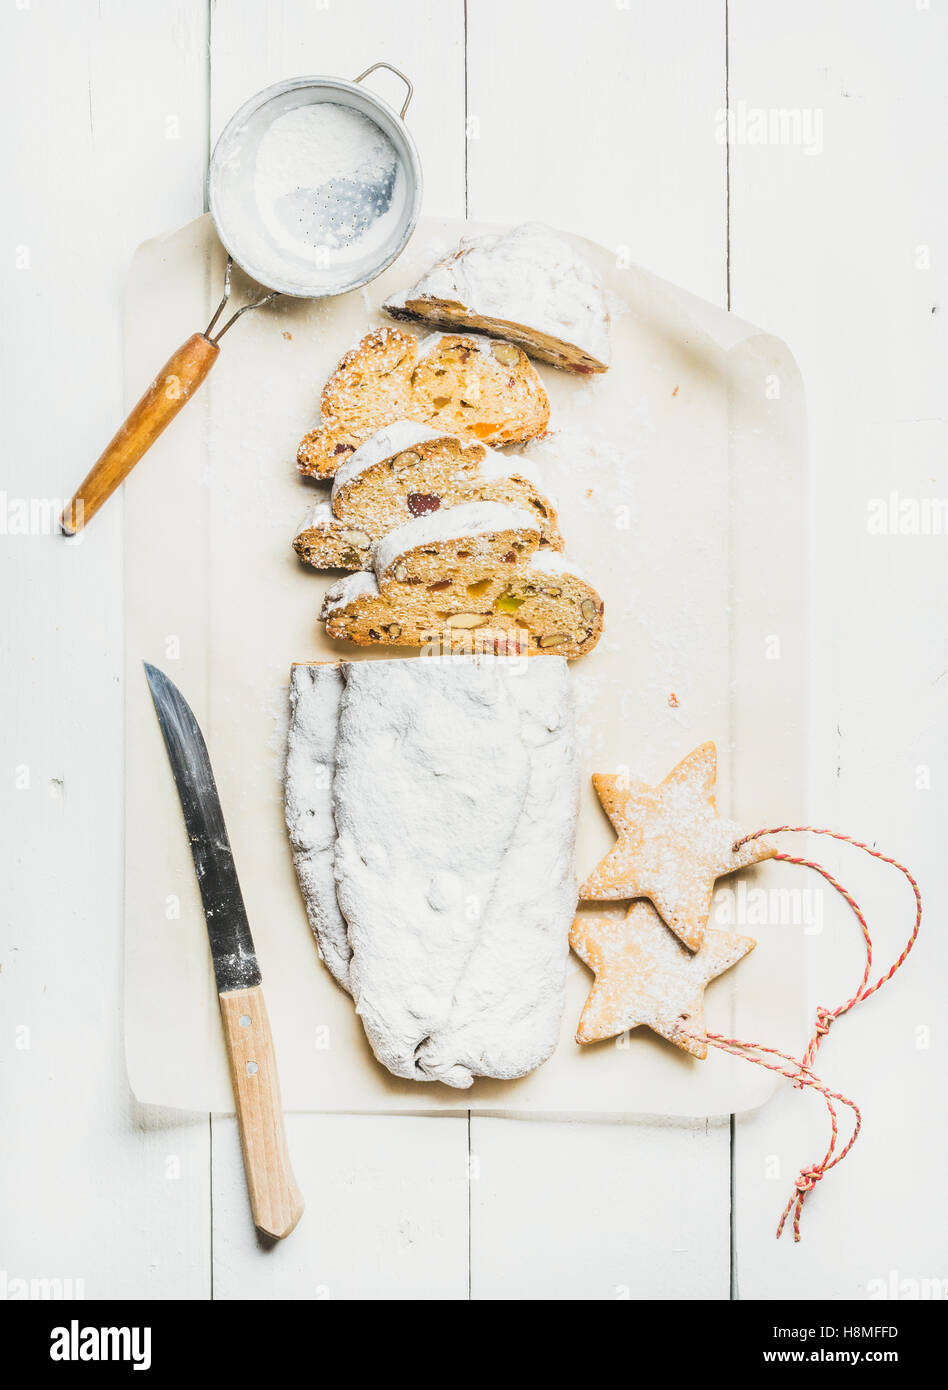 Traditional German Christmas cake Stollen cut in pieces, cookies, sieve - Stock Image